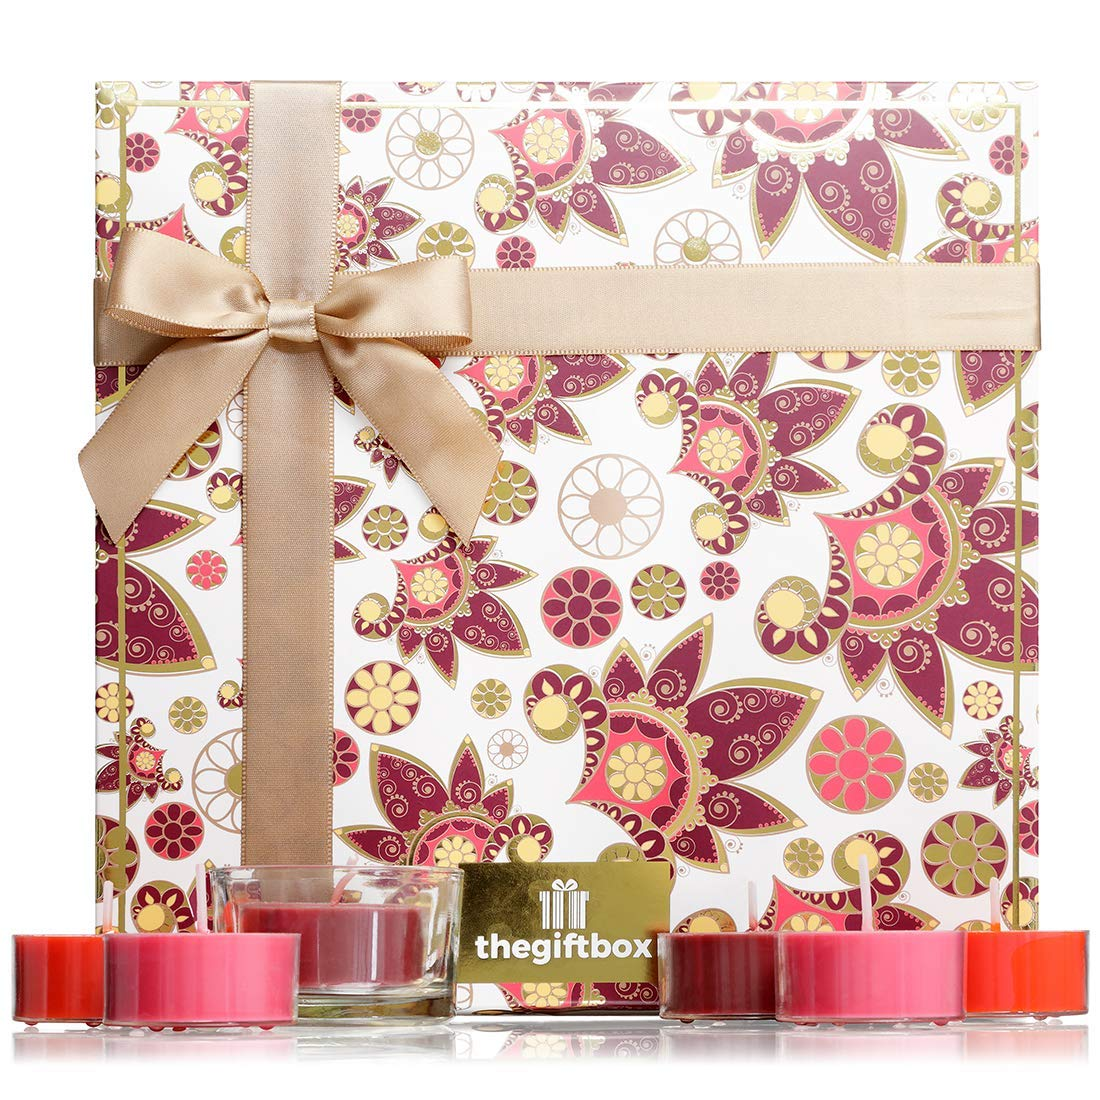 Scented Candle Gift Set with 21 Scented Candles plus holder. A Large Candle Gift ideal for £5.00